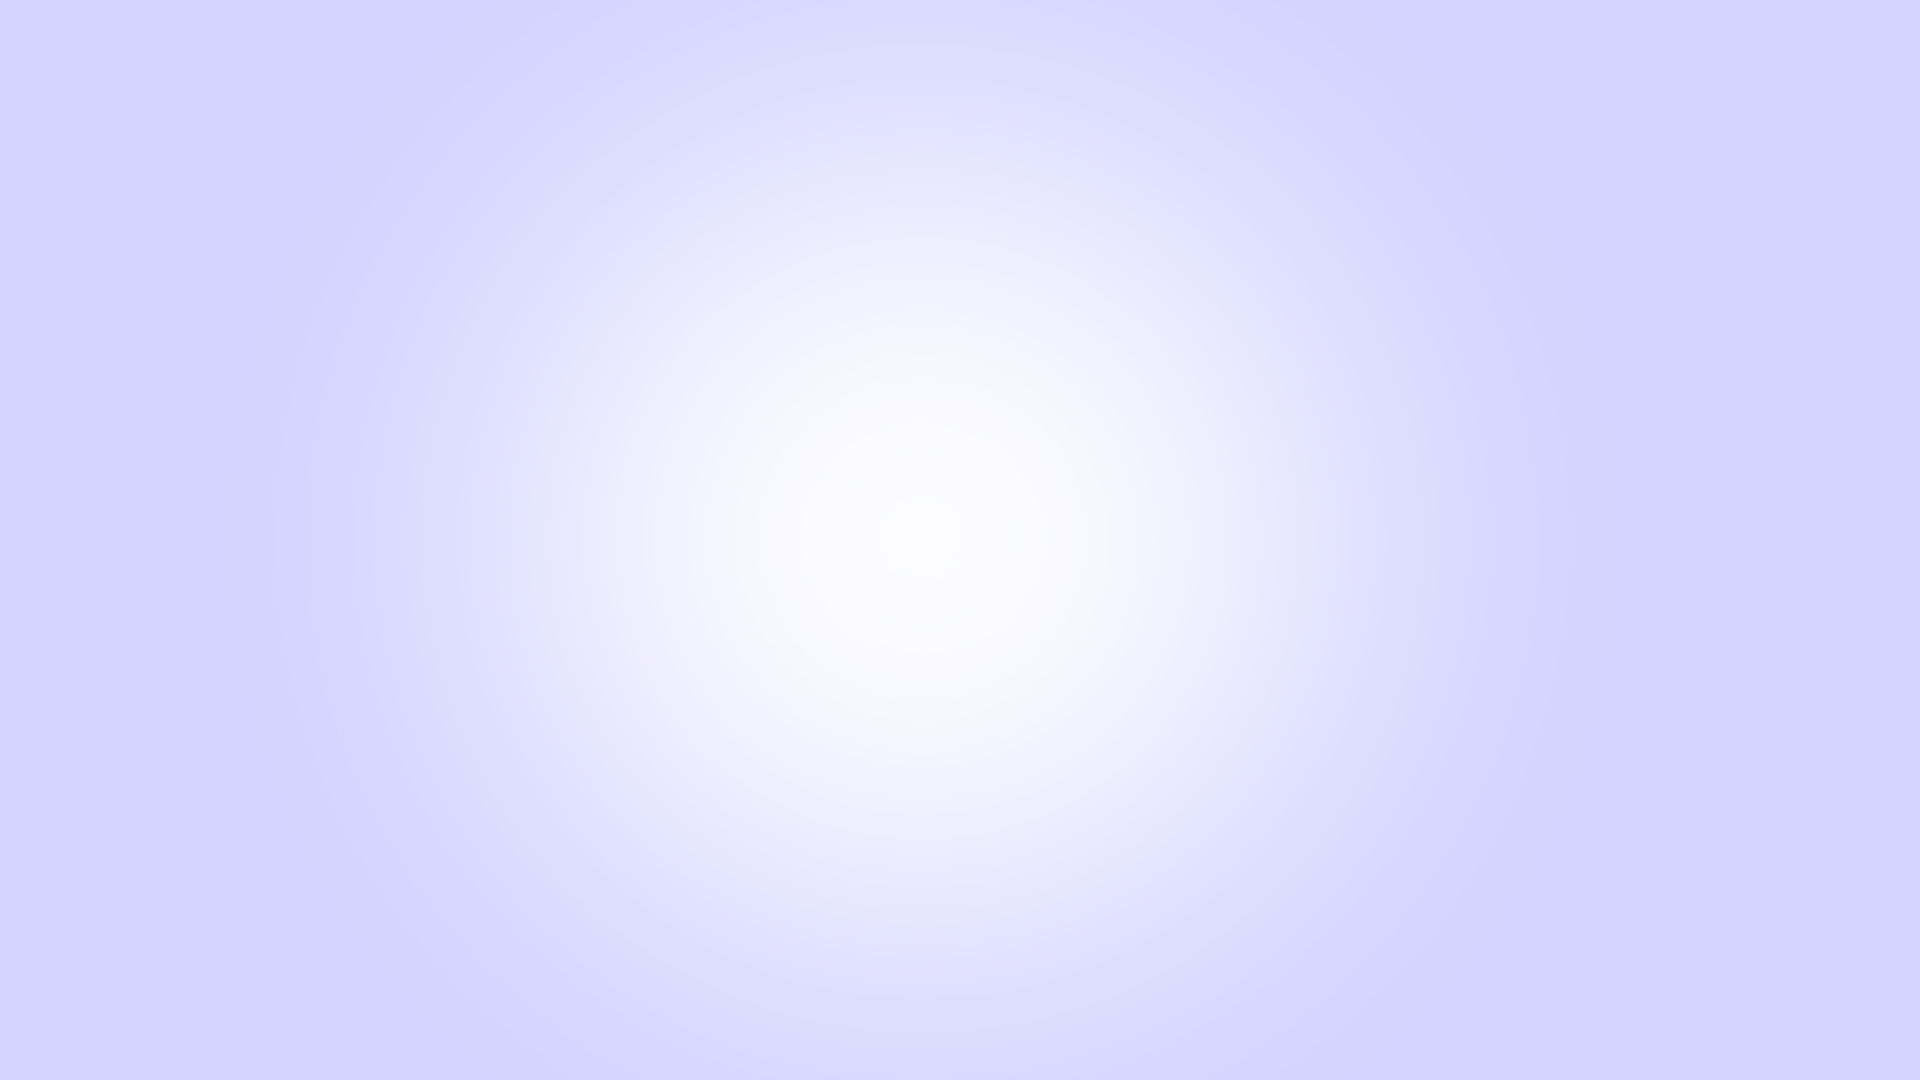 backgrounds gradients video production twitter circle blue 1920x1080